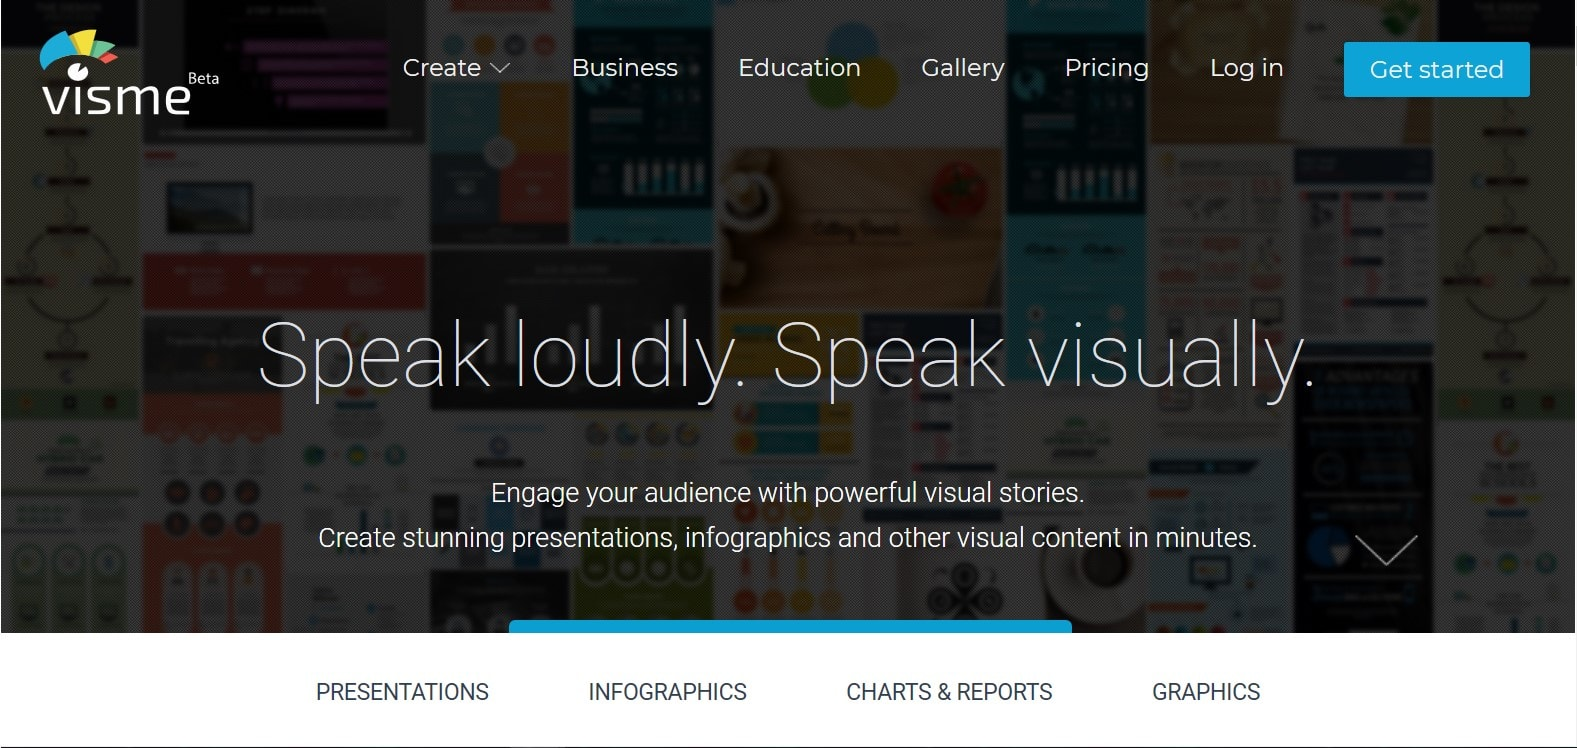 Visme infographic tools create infographics online